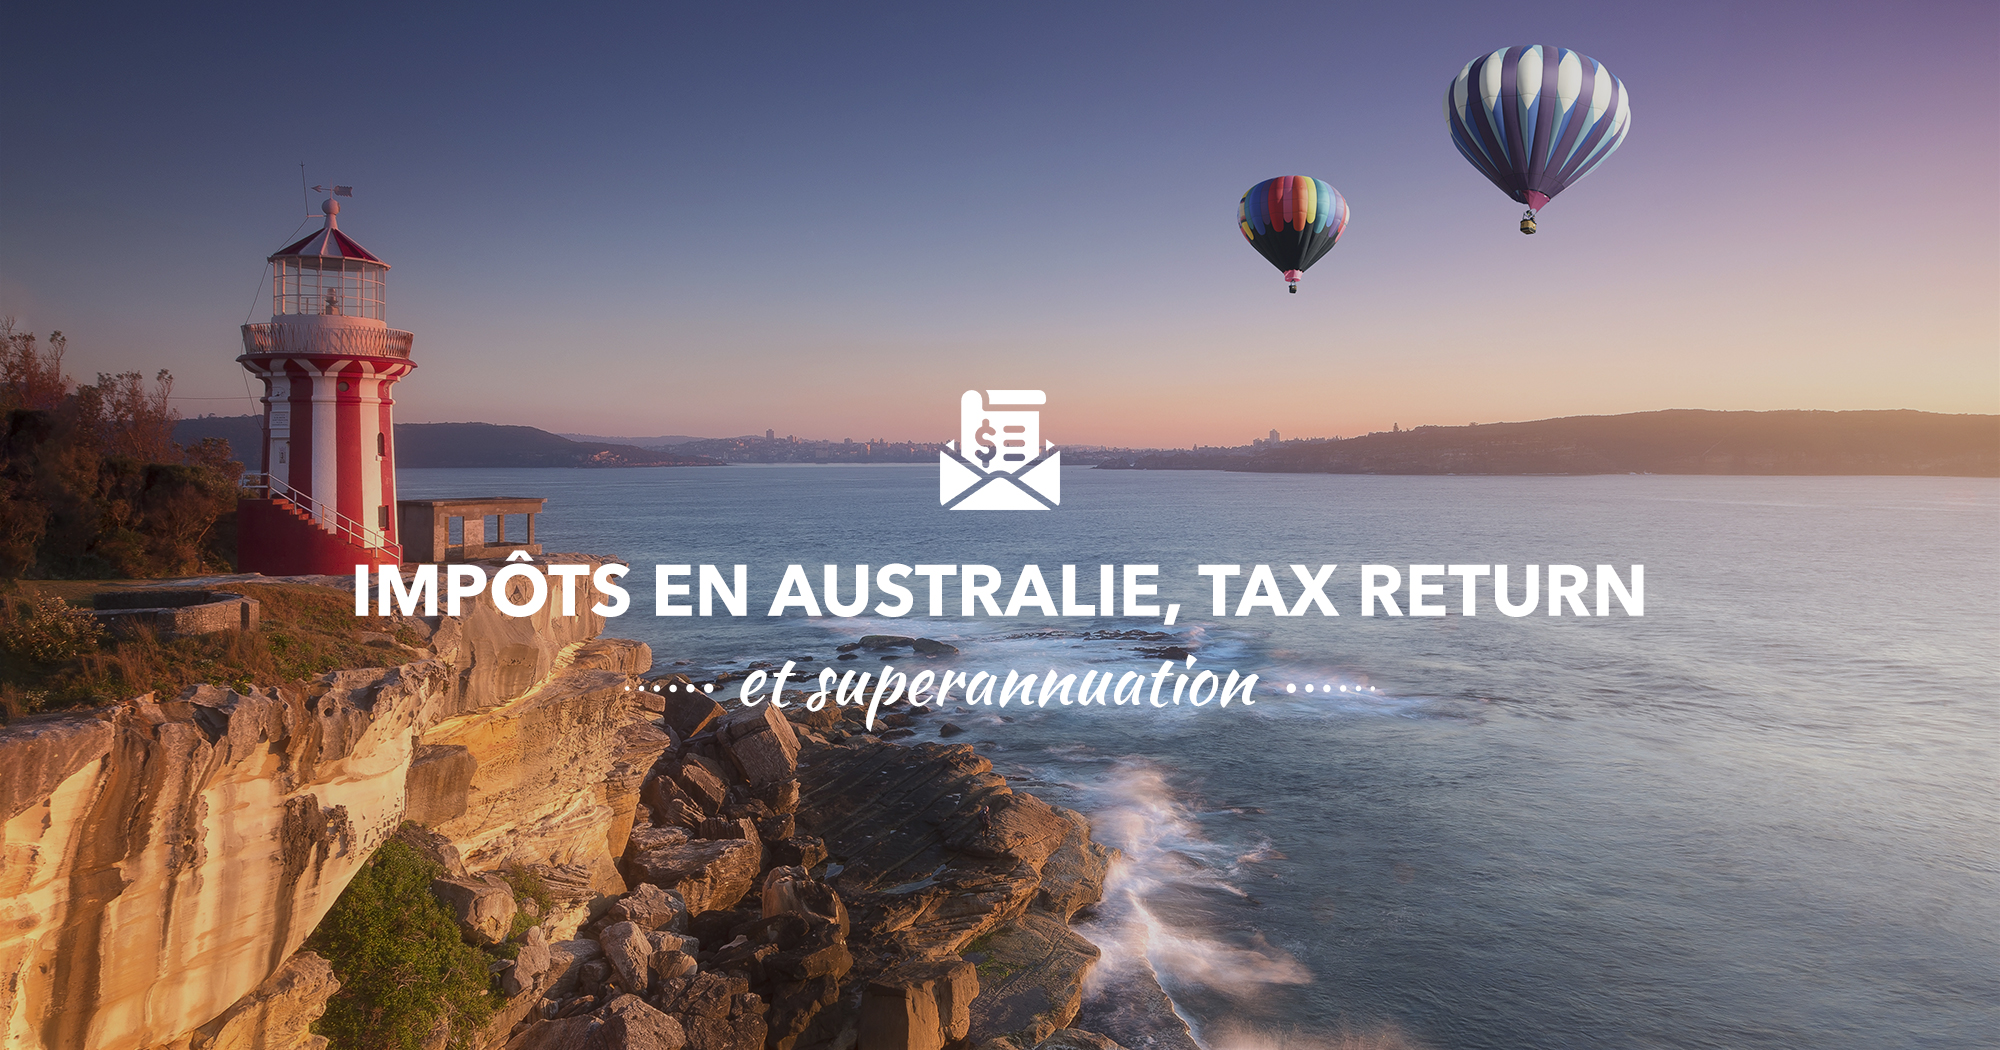 visuels-dossiers-whv-australie-impots-tax-return